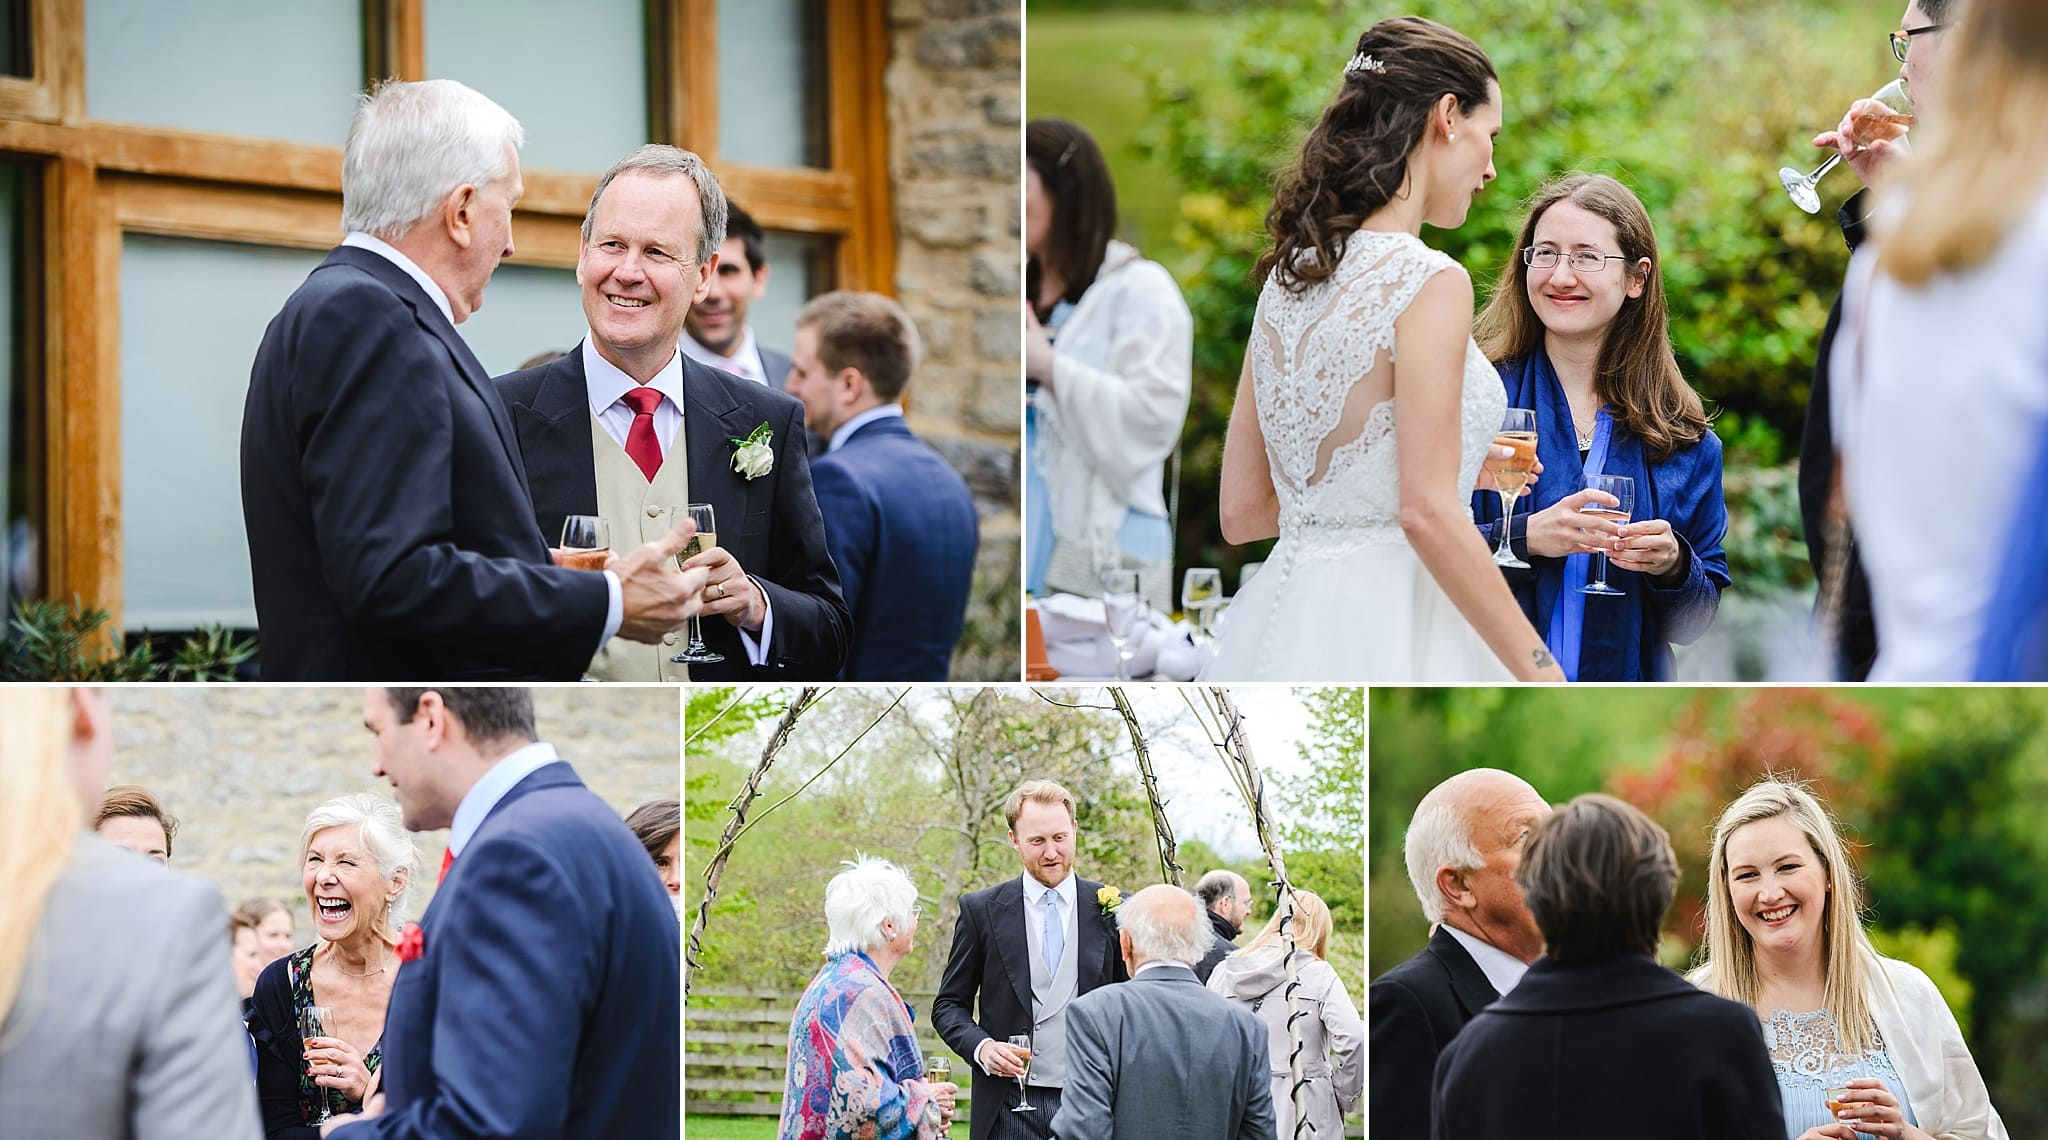 Guess enjoy welcome drinks in the garden of Wick Farm wedding Bath